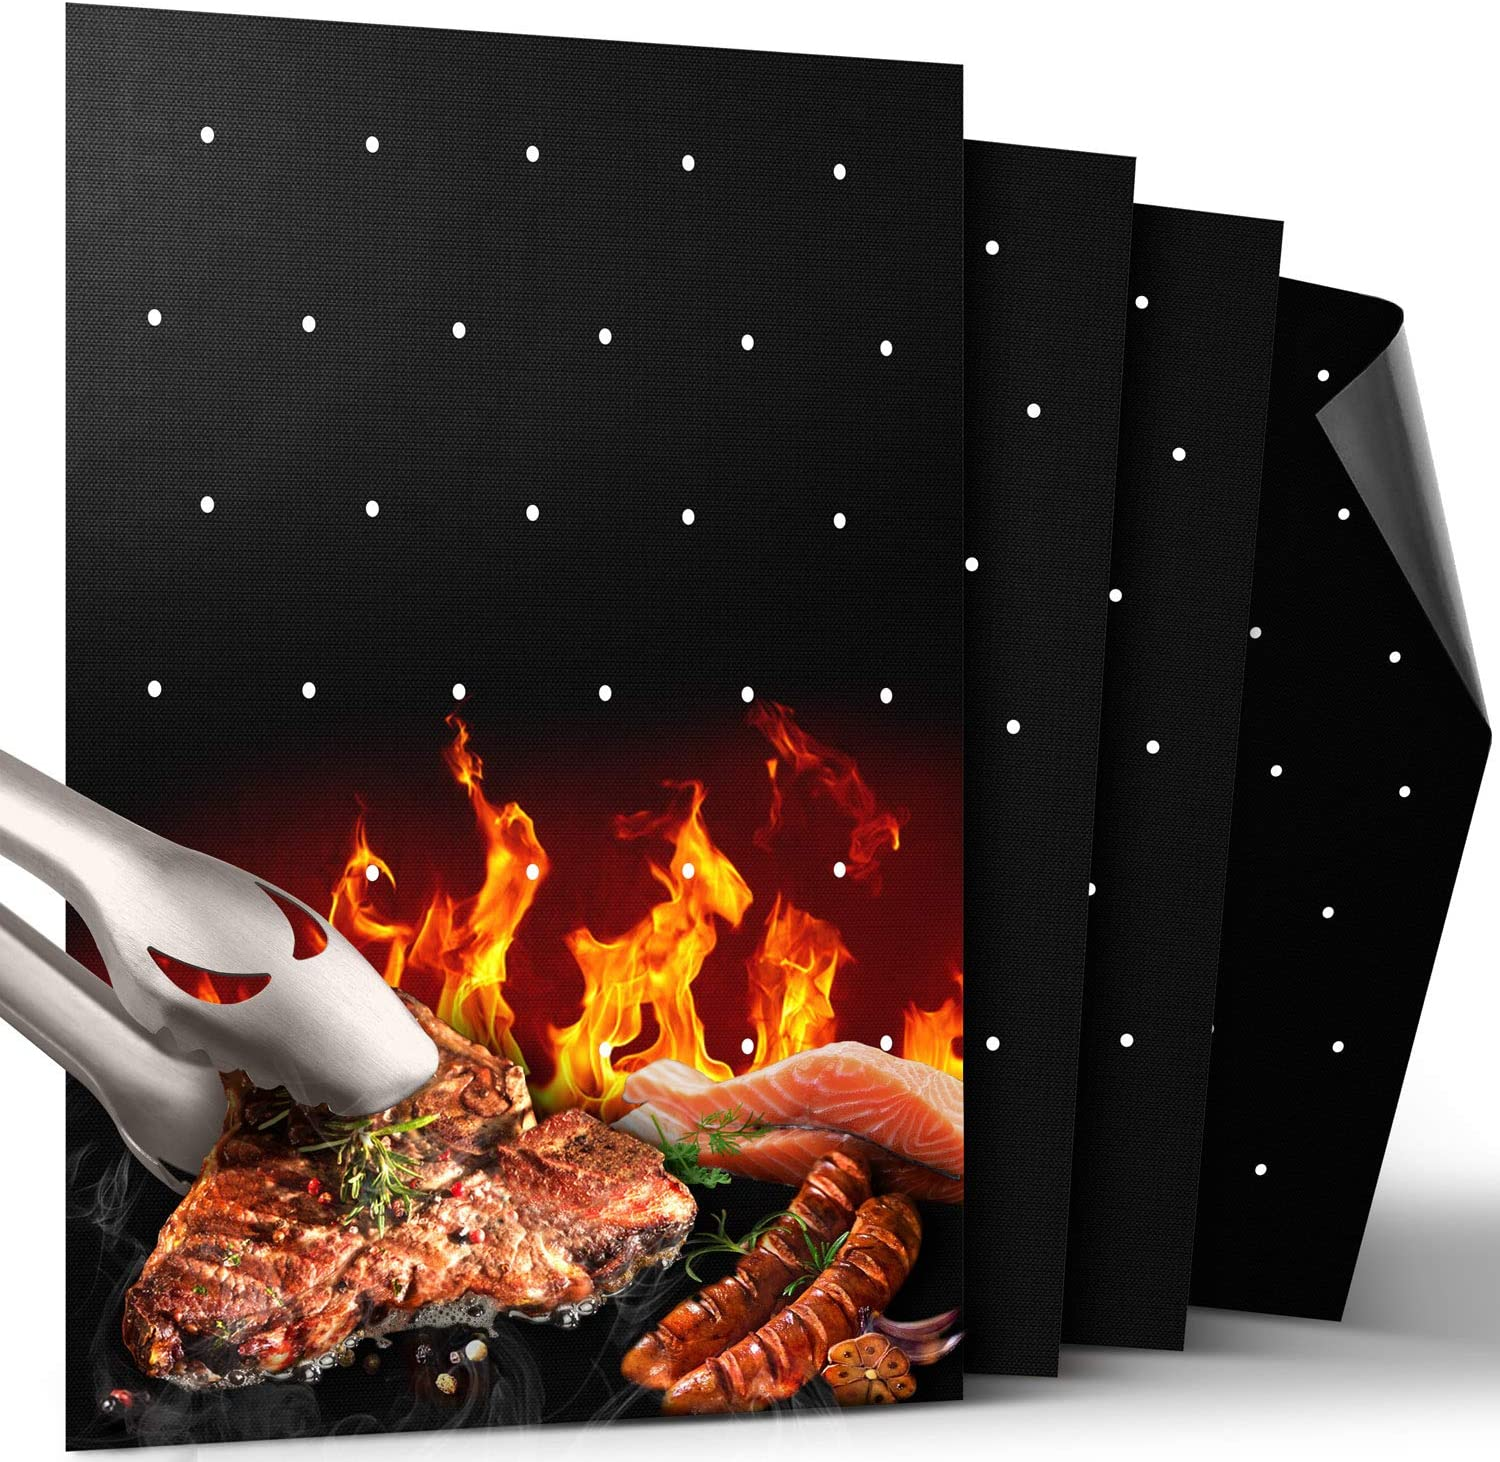 GRILLART BBQ Grill Mat, Non Stick BBQ Mat with Holes Heavy Duty 500 Degree Grill & Baking Mats (Set of 4), Easy Clean & Use BBQ Accessories, Reusable on Gas Charcoal Electric Grills: Garden & Outdoor